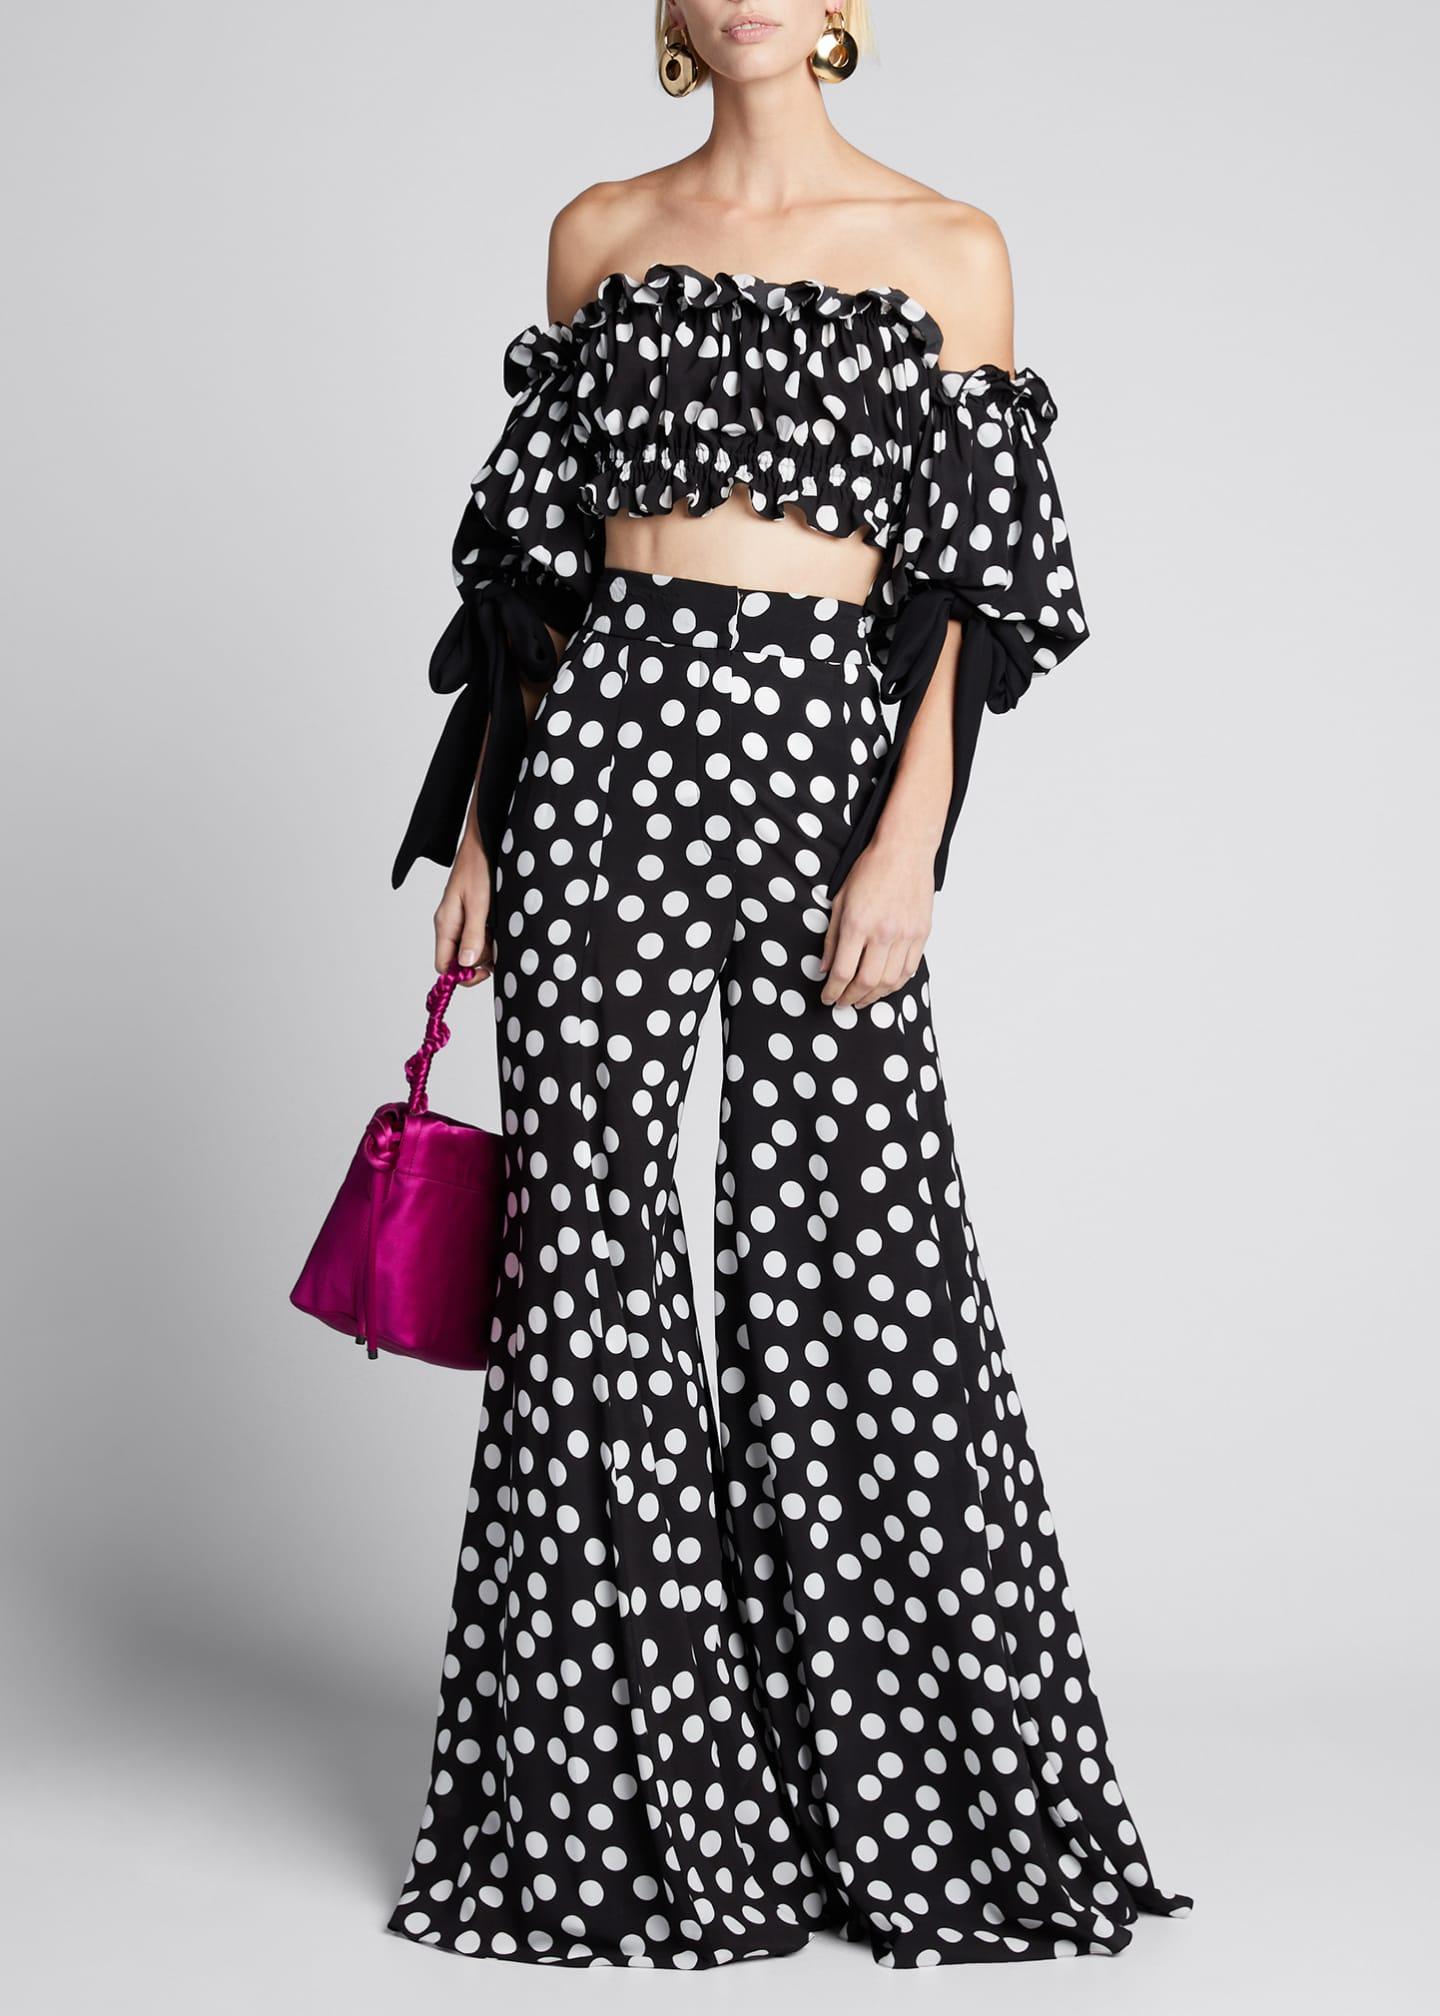 Carolina Herrera Polka-Dot Print Extra Wide-Leg Pants